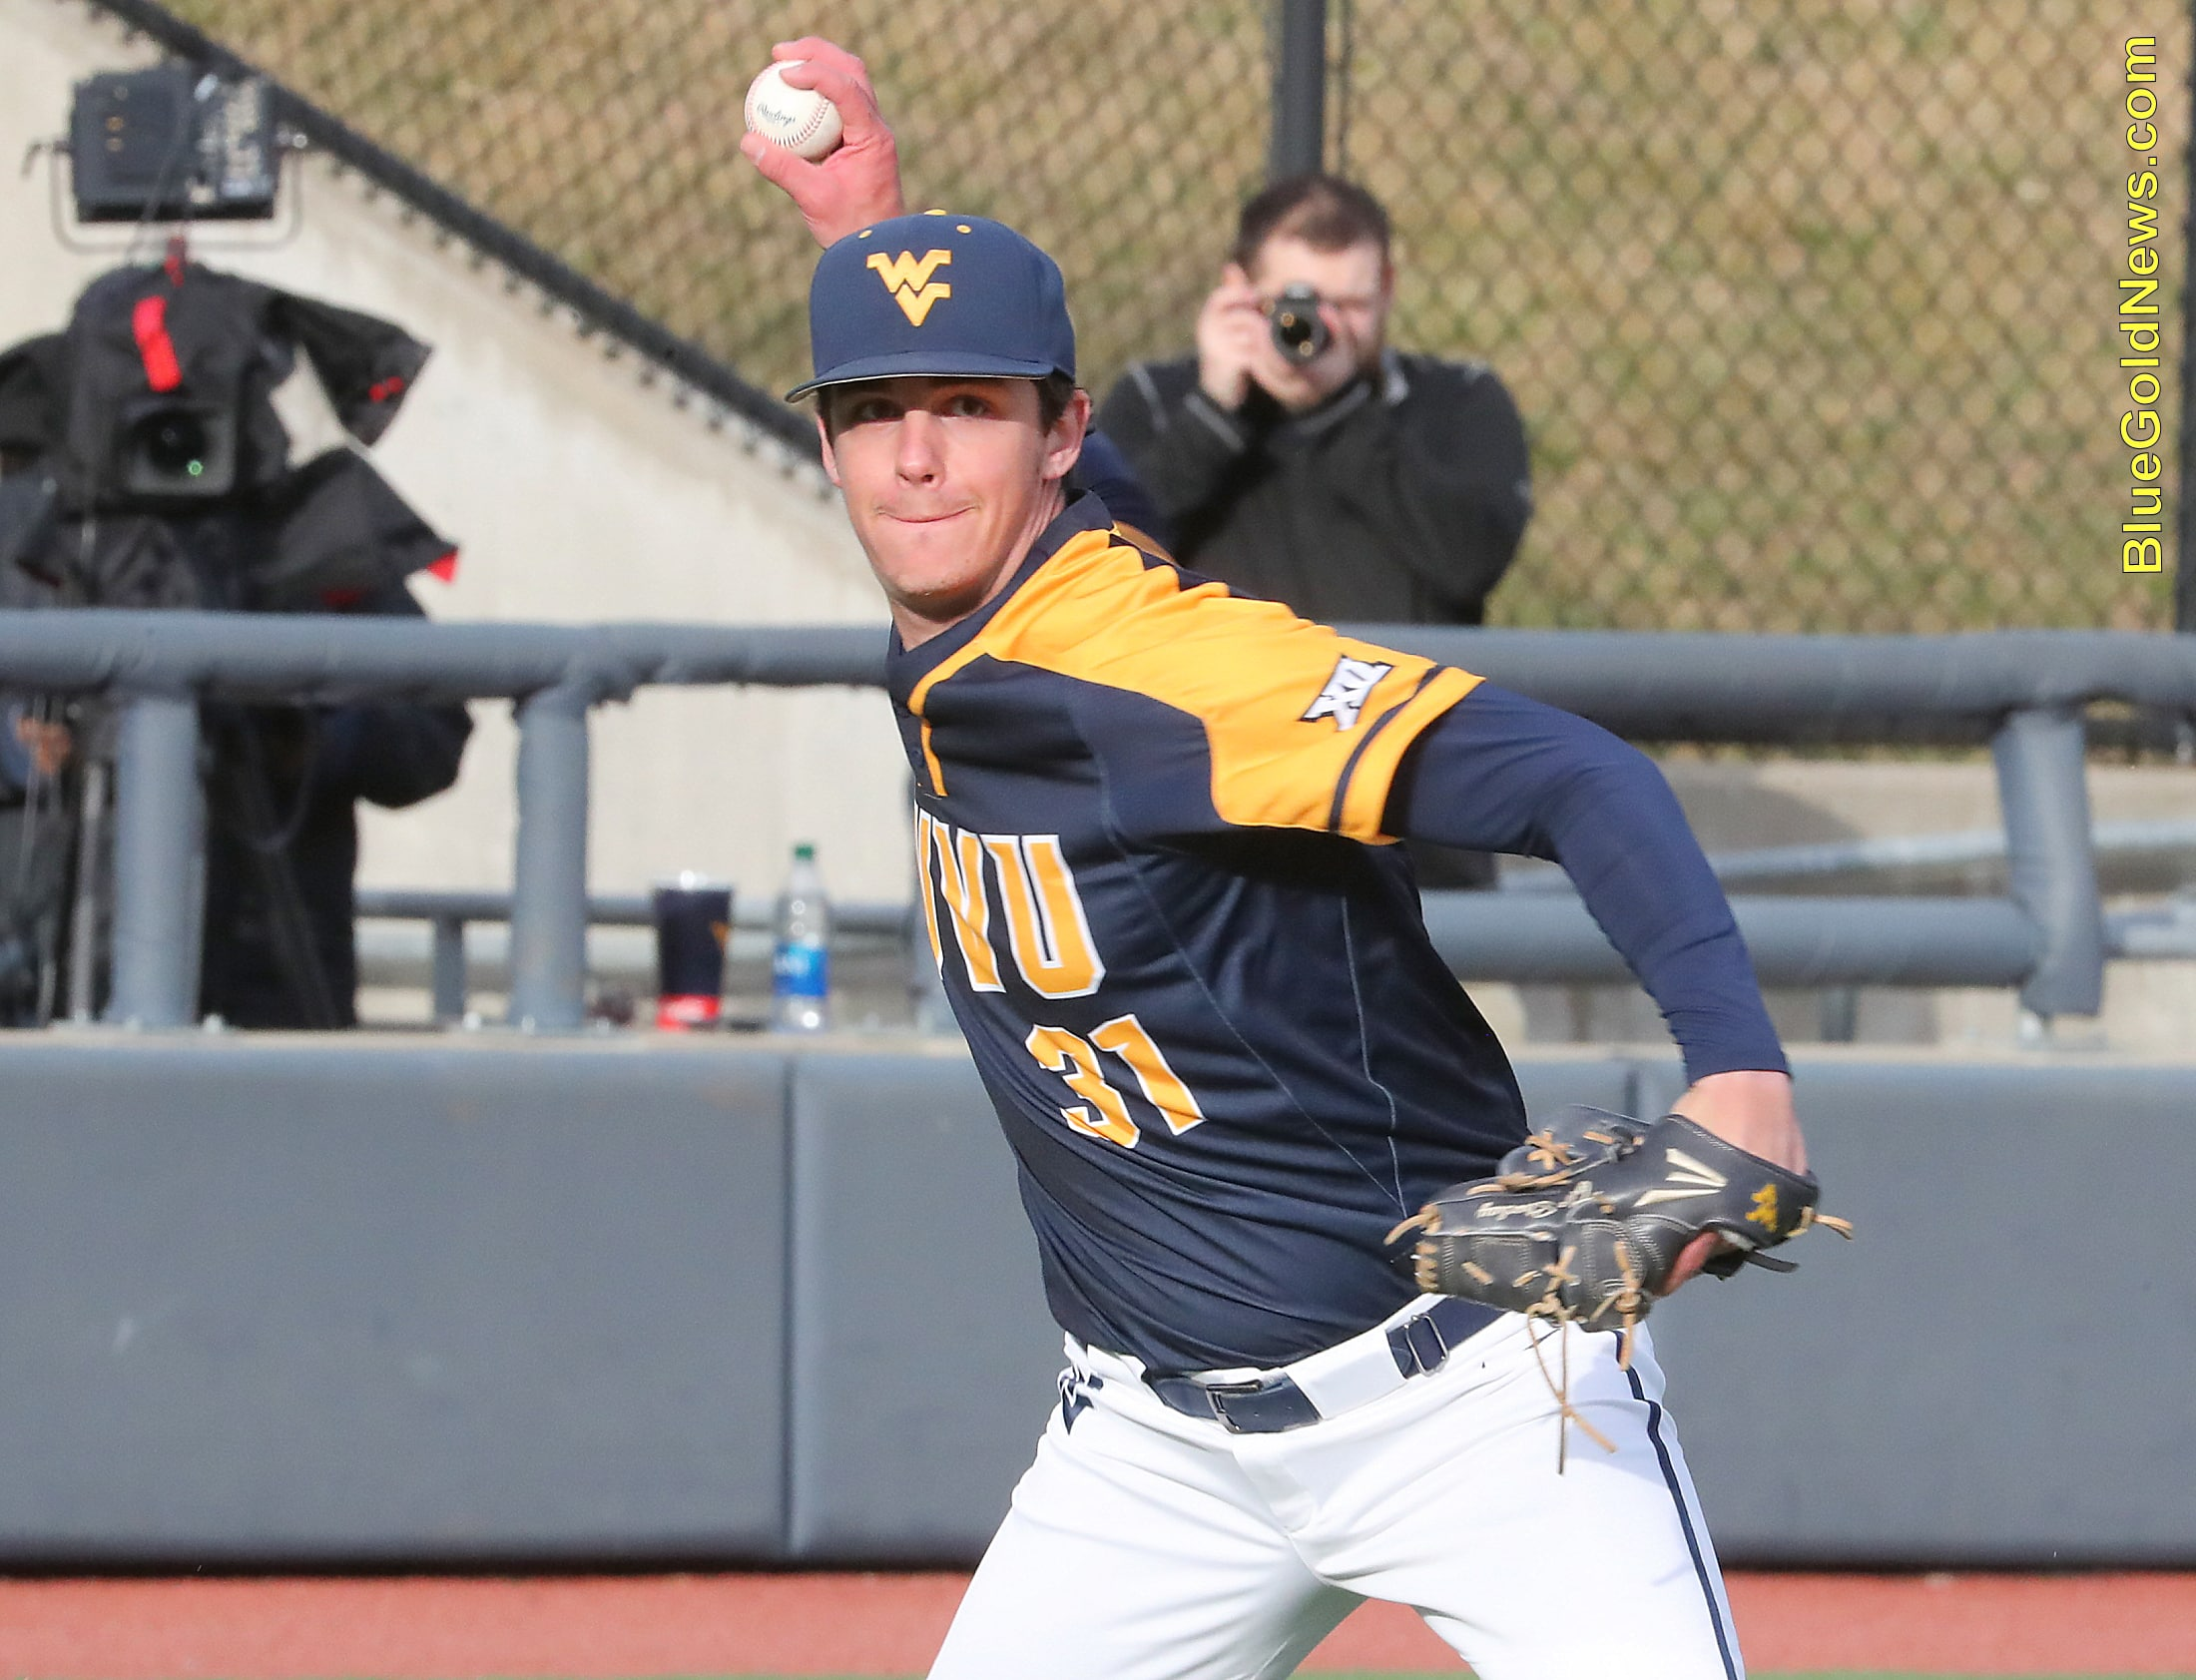 West Virginia pitcher Tyler Strechay fires to first after fielding a bunt